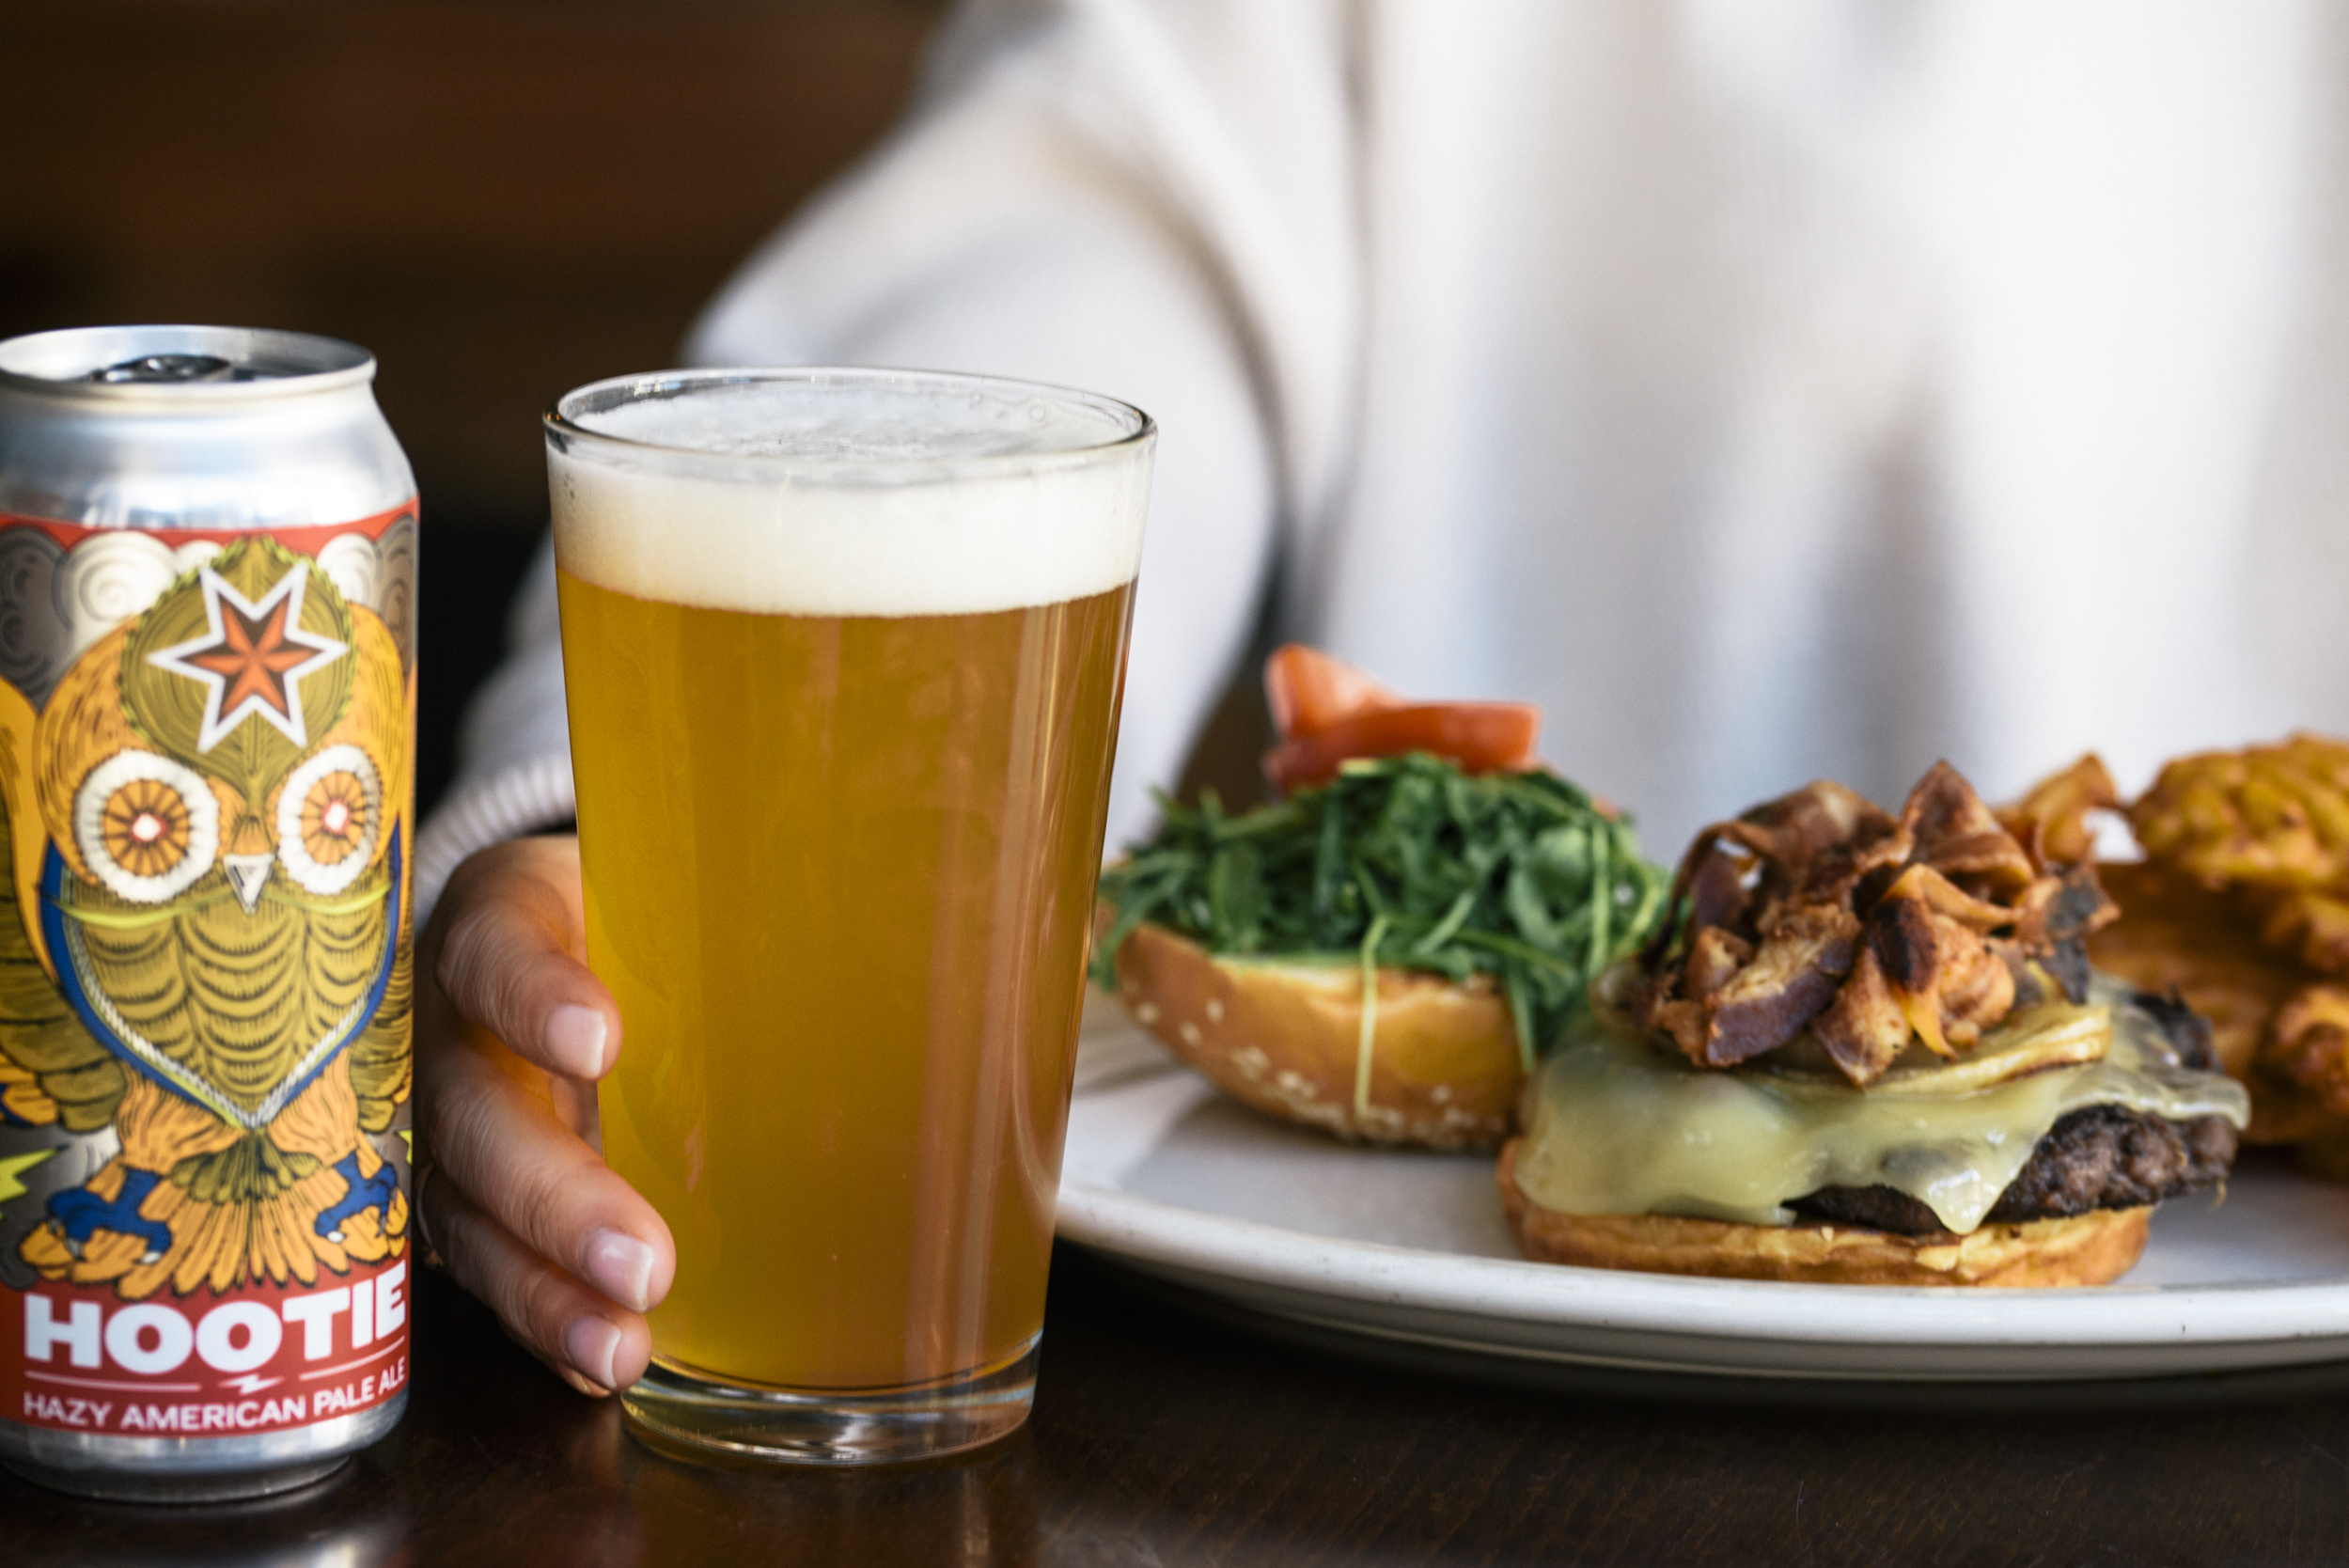 a close up of a woman with open bacon cheese burger on a plate infront of her with a pint of freshly poured Hootie beer next to plate and can of beer on left side of photo